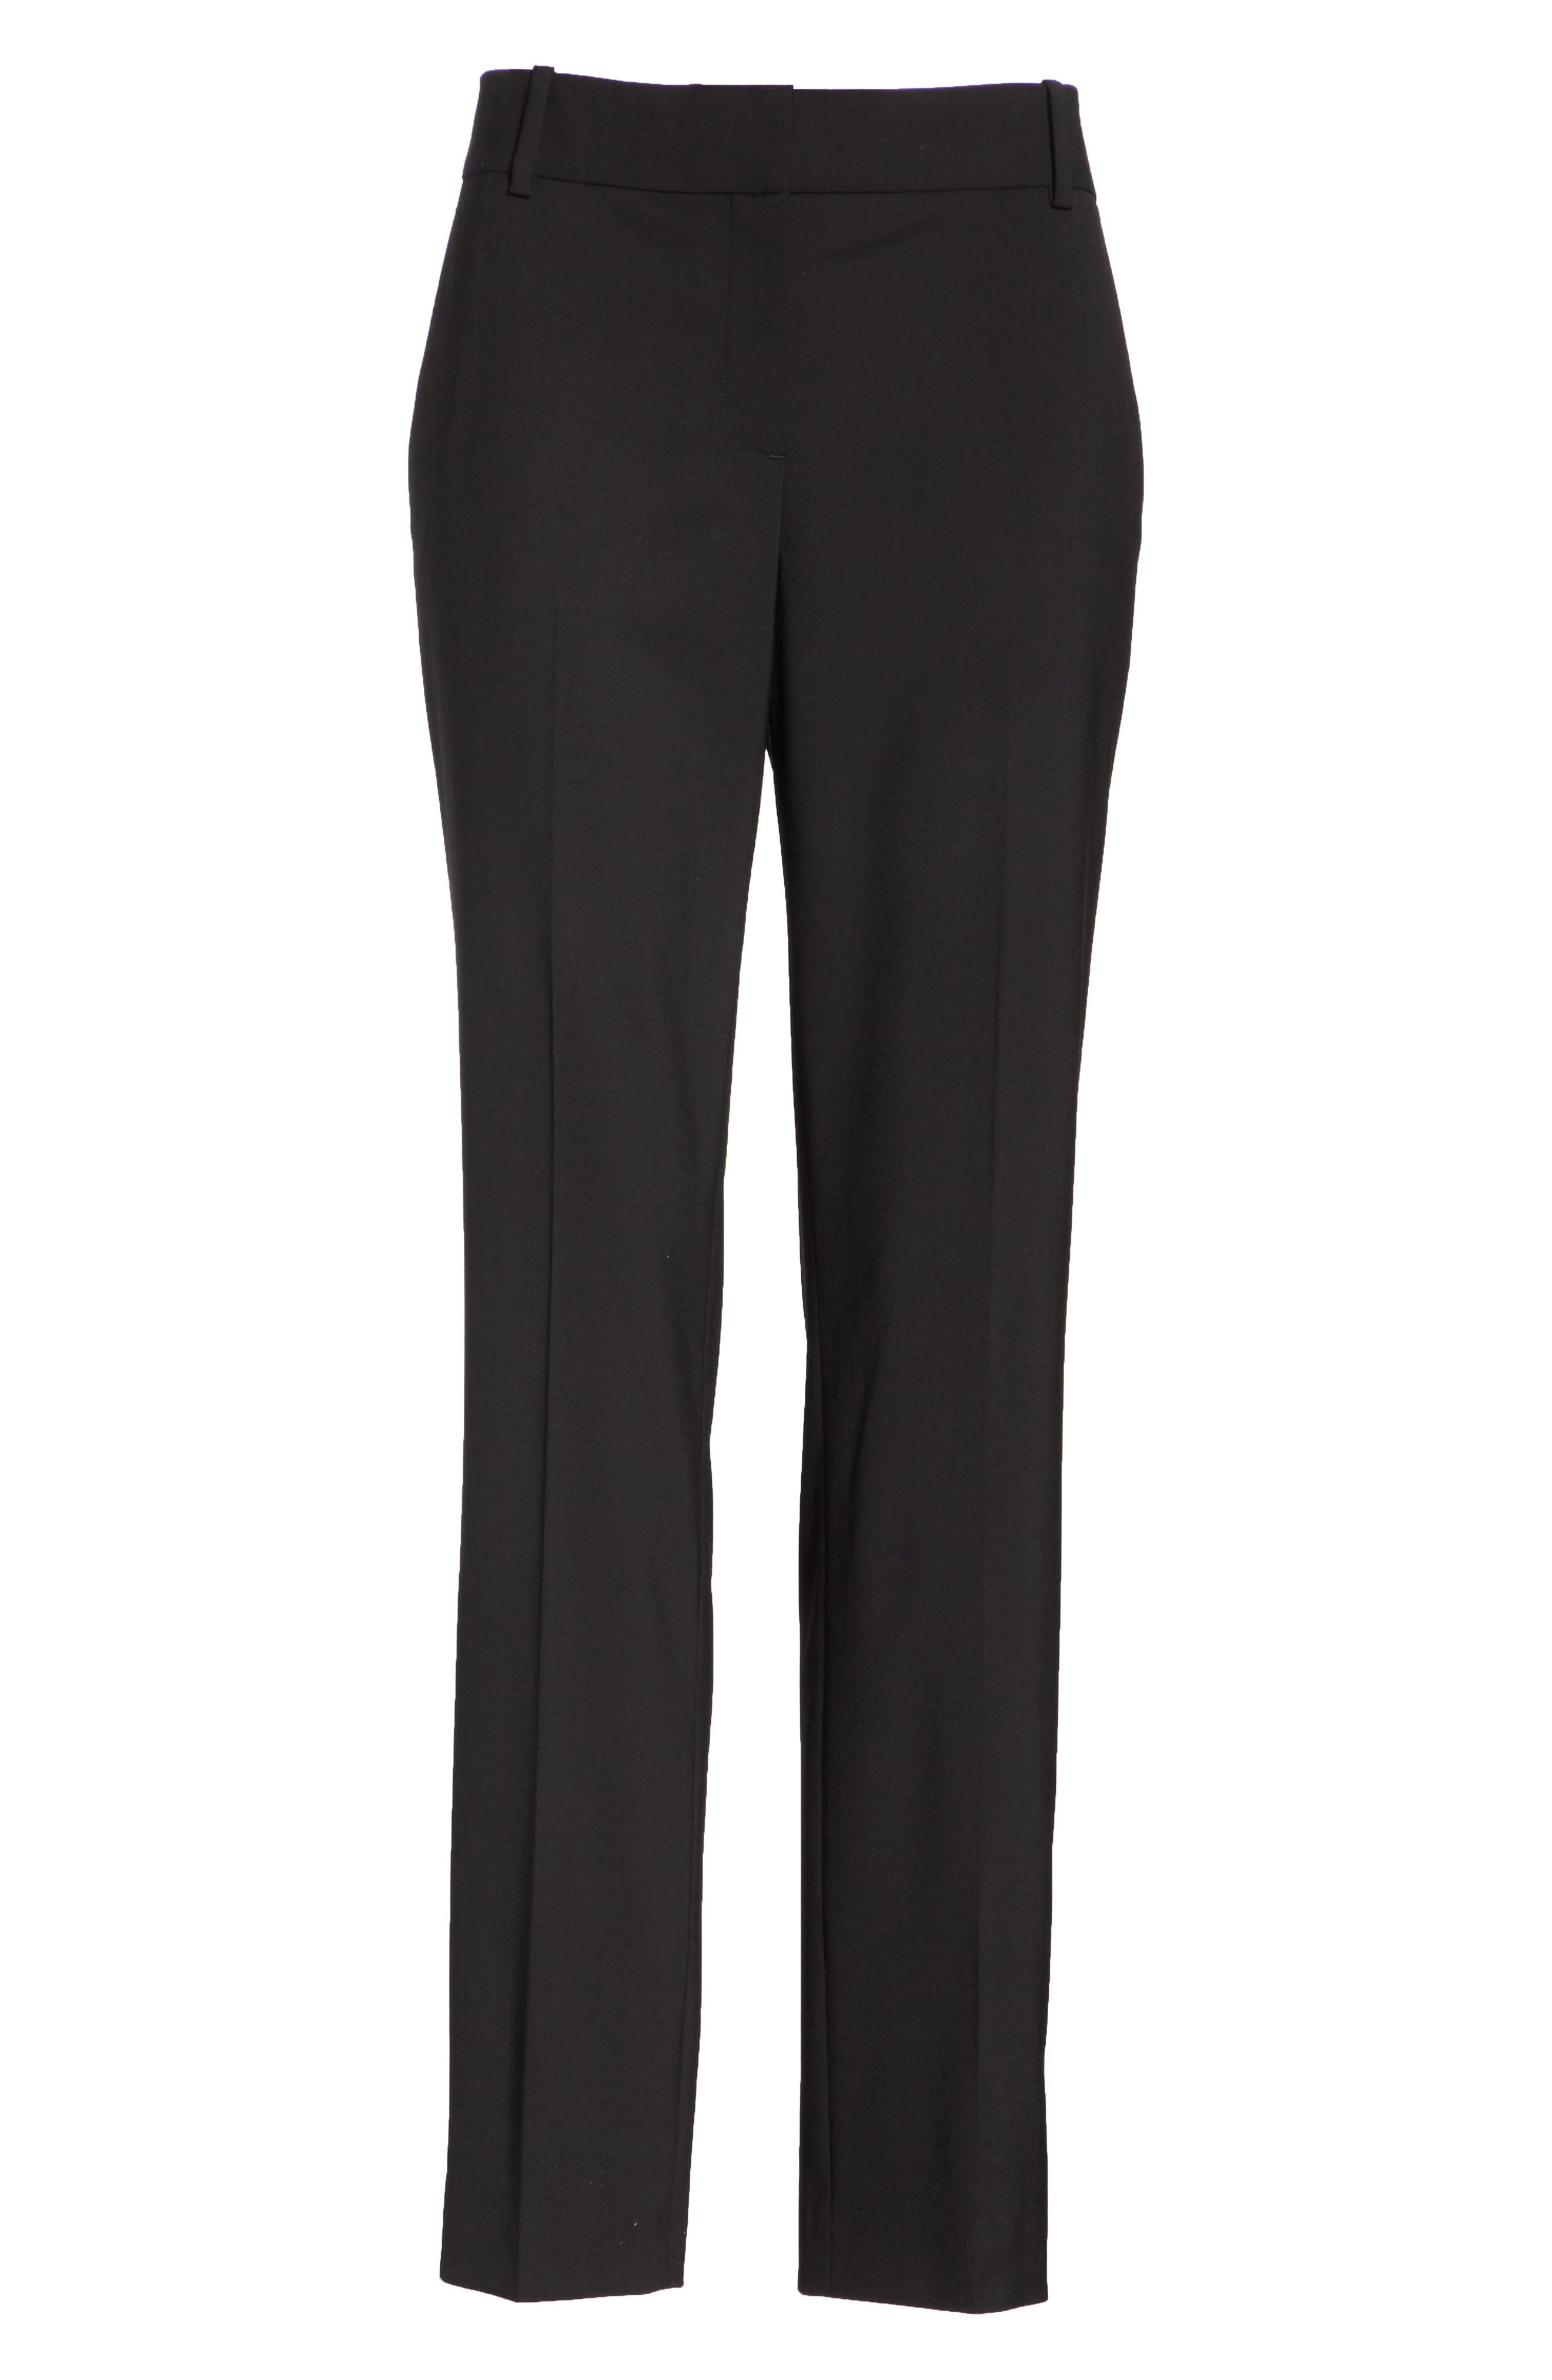 Straight Leg Stretch Wool Trousers,                             Alternate thumbnail 6, color,                             BLACK